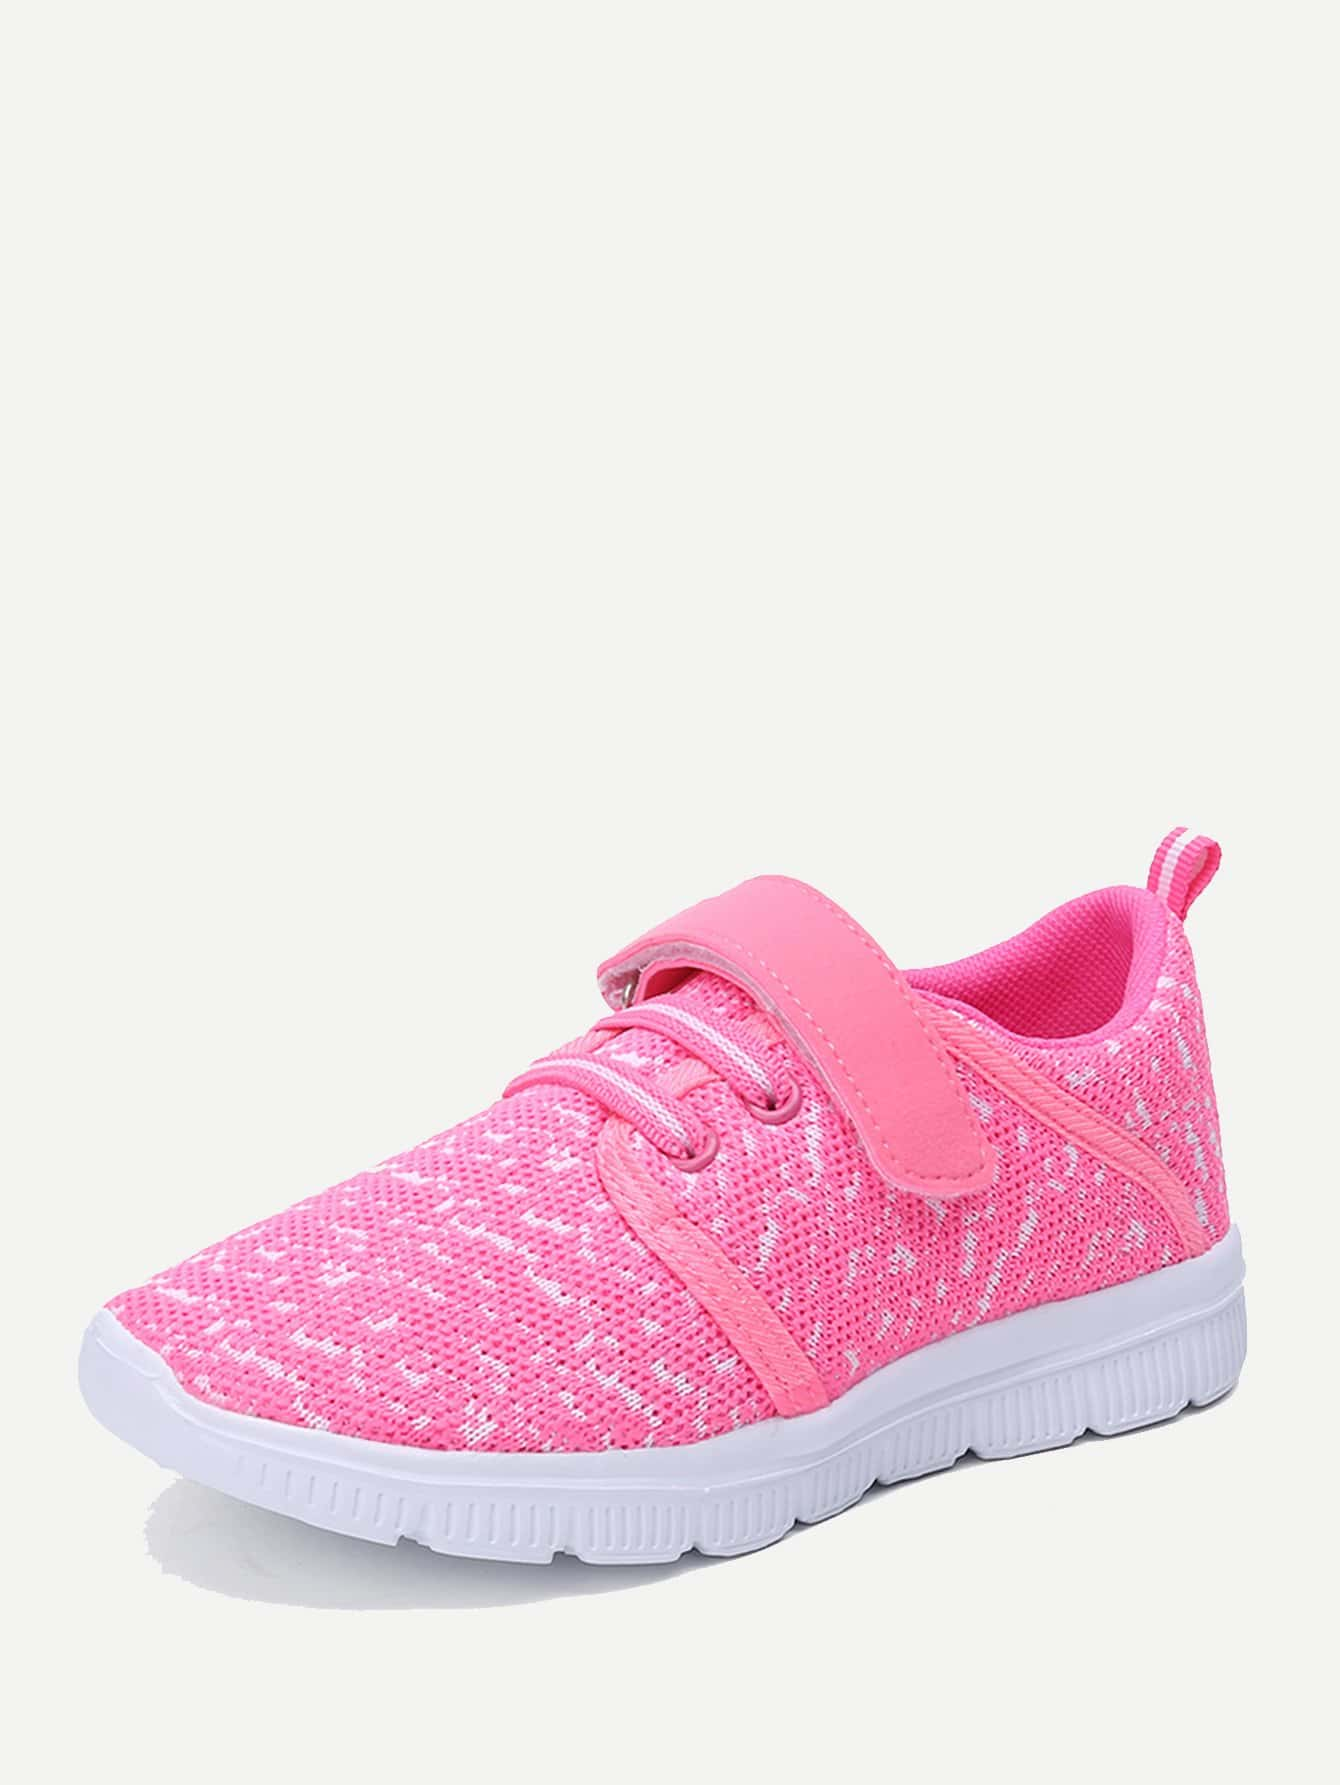 Girls Slip On Sneakers полотенцесушитель energy u g3 770x635